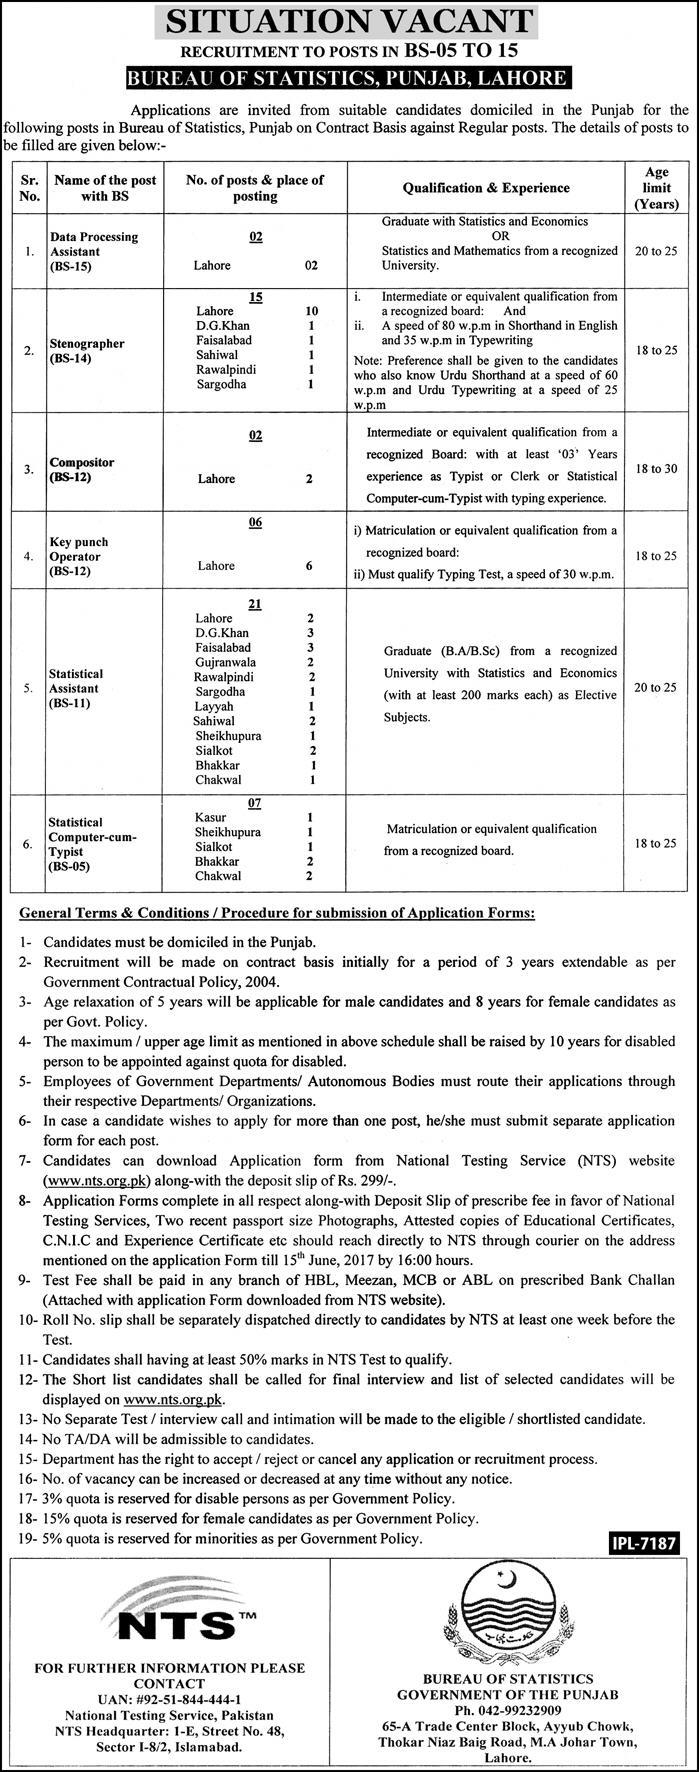 Situation Vacants for Assistant, stenographer, Compositor, Key Punch Operator & Statistical Assistant